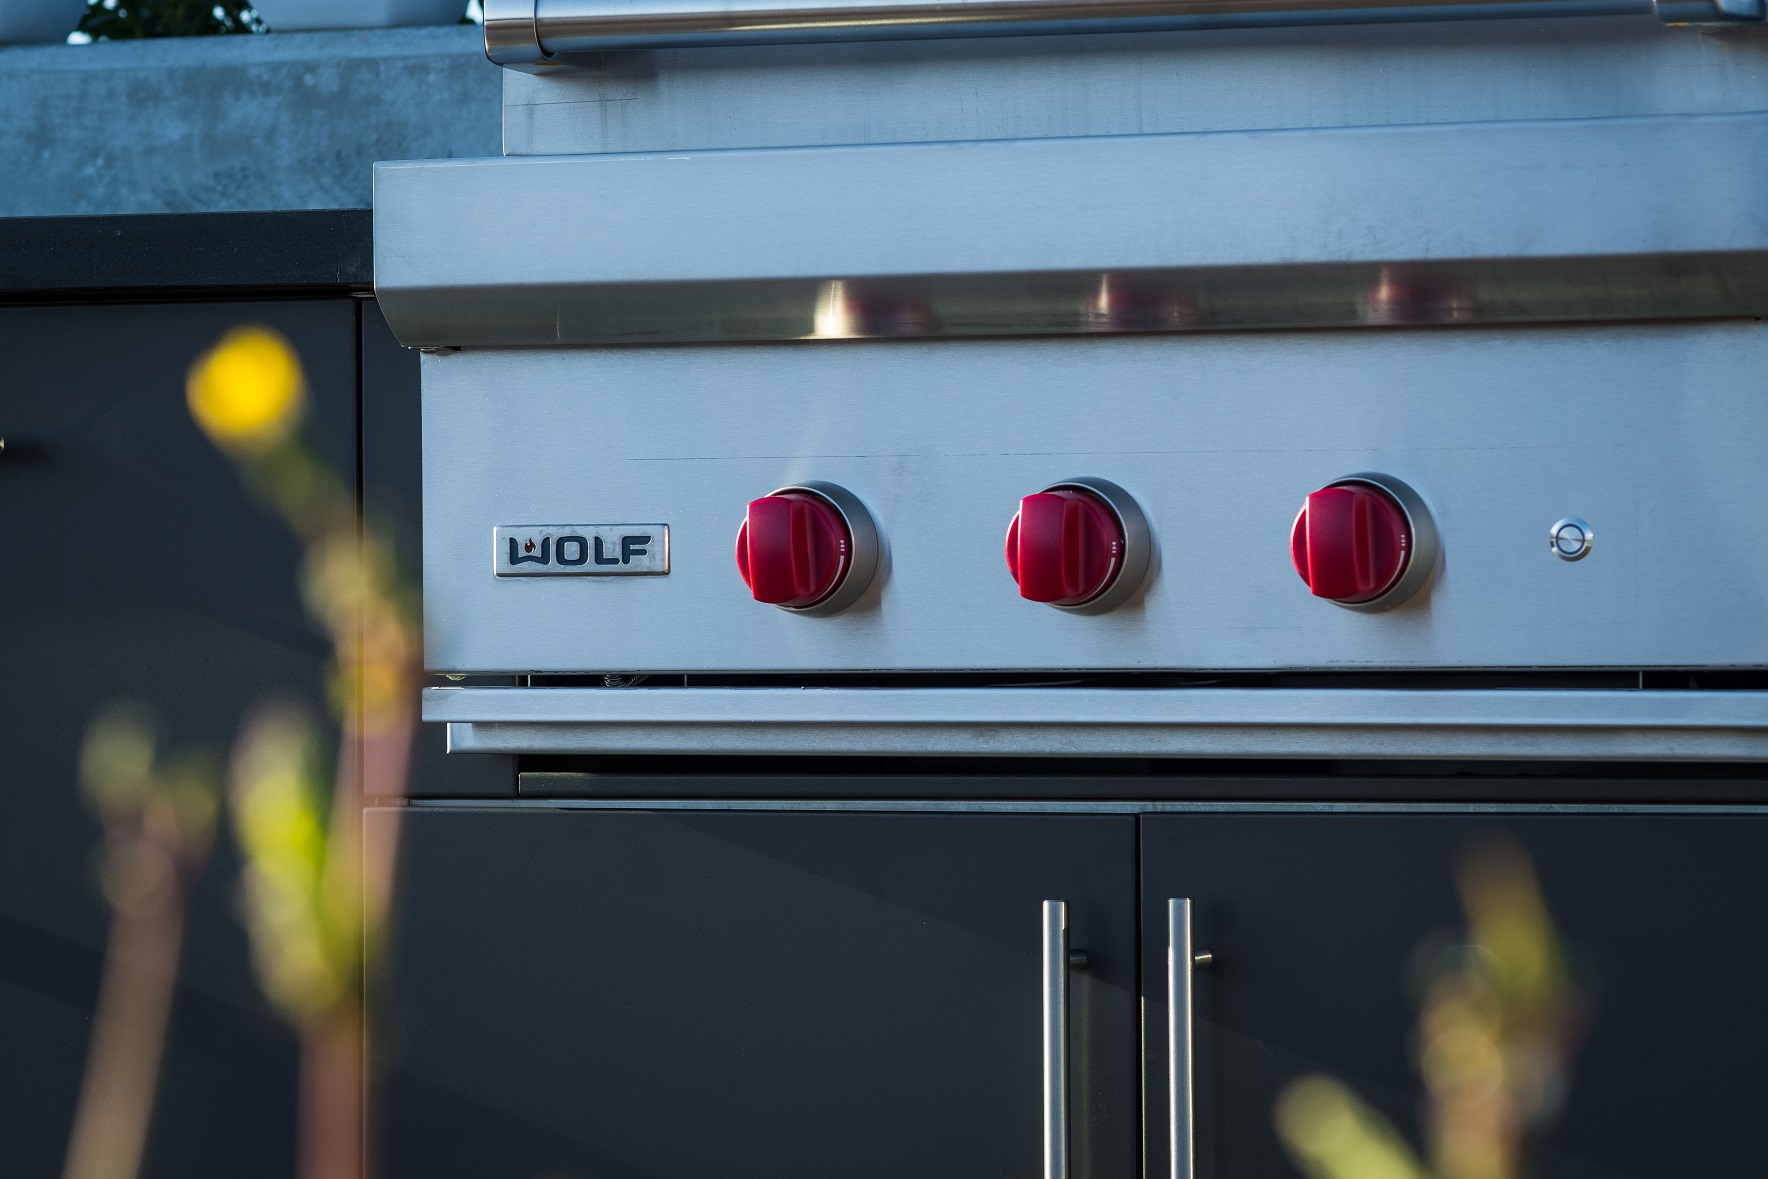 Sherwood Outdoor Kitchens, Vancouver, West 5th - 502 (6).jpg